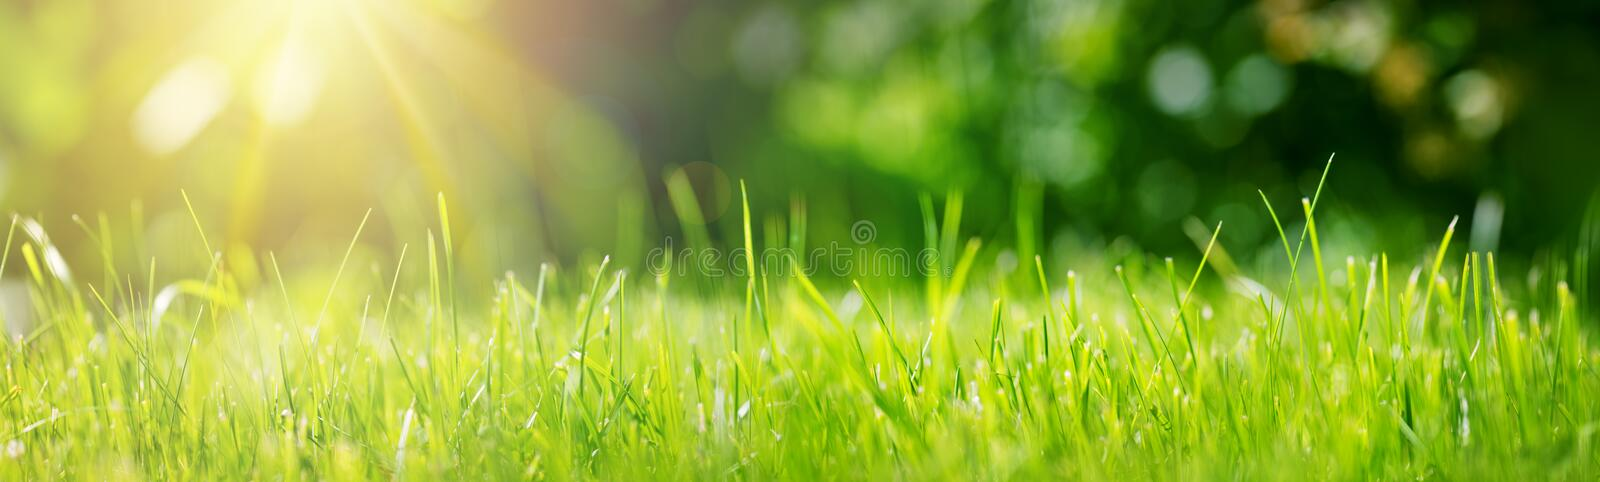 Fresh green grass background in sunny summer day royalty free stock photo